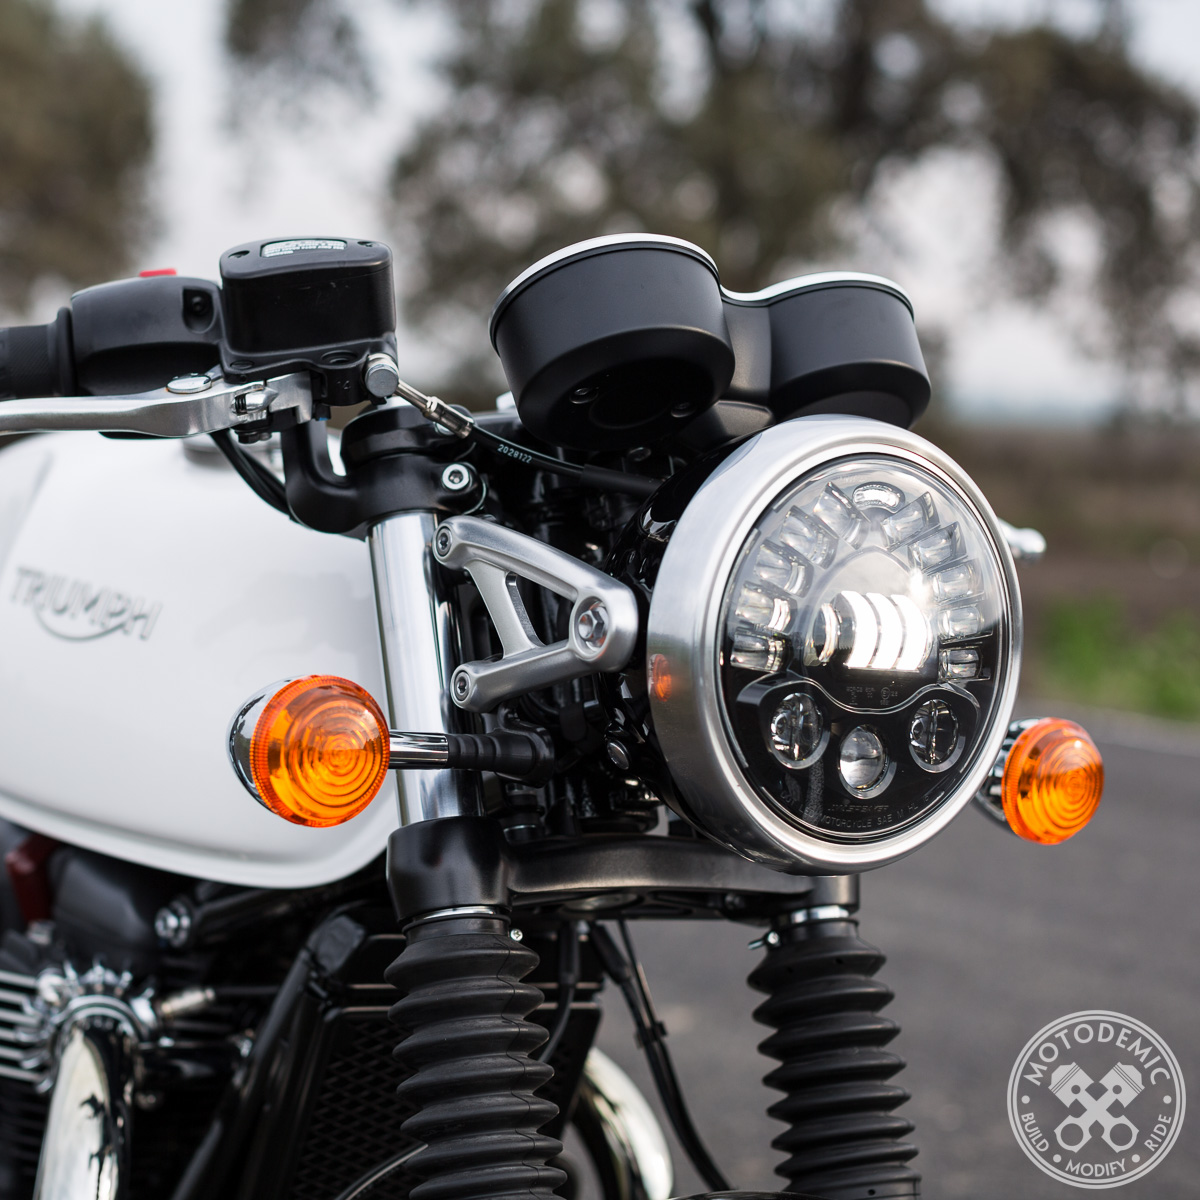 Bmw Usa Jobs >> LED Headlight for Triumph Street Scrambler • MOTODEMIC